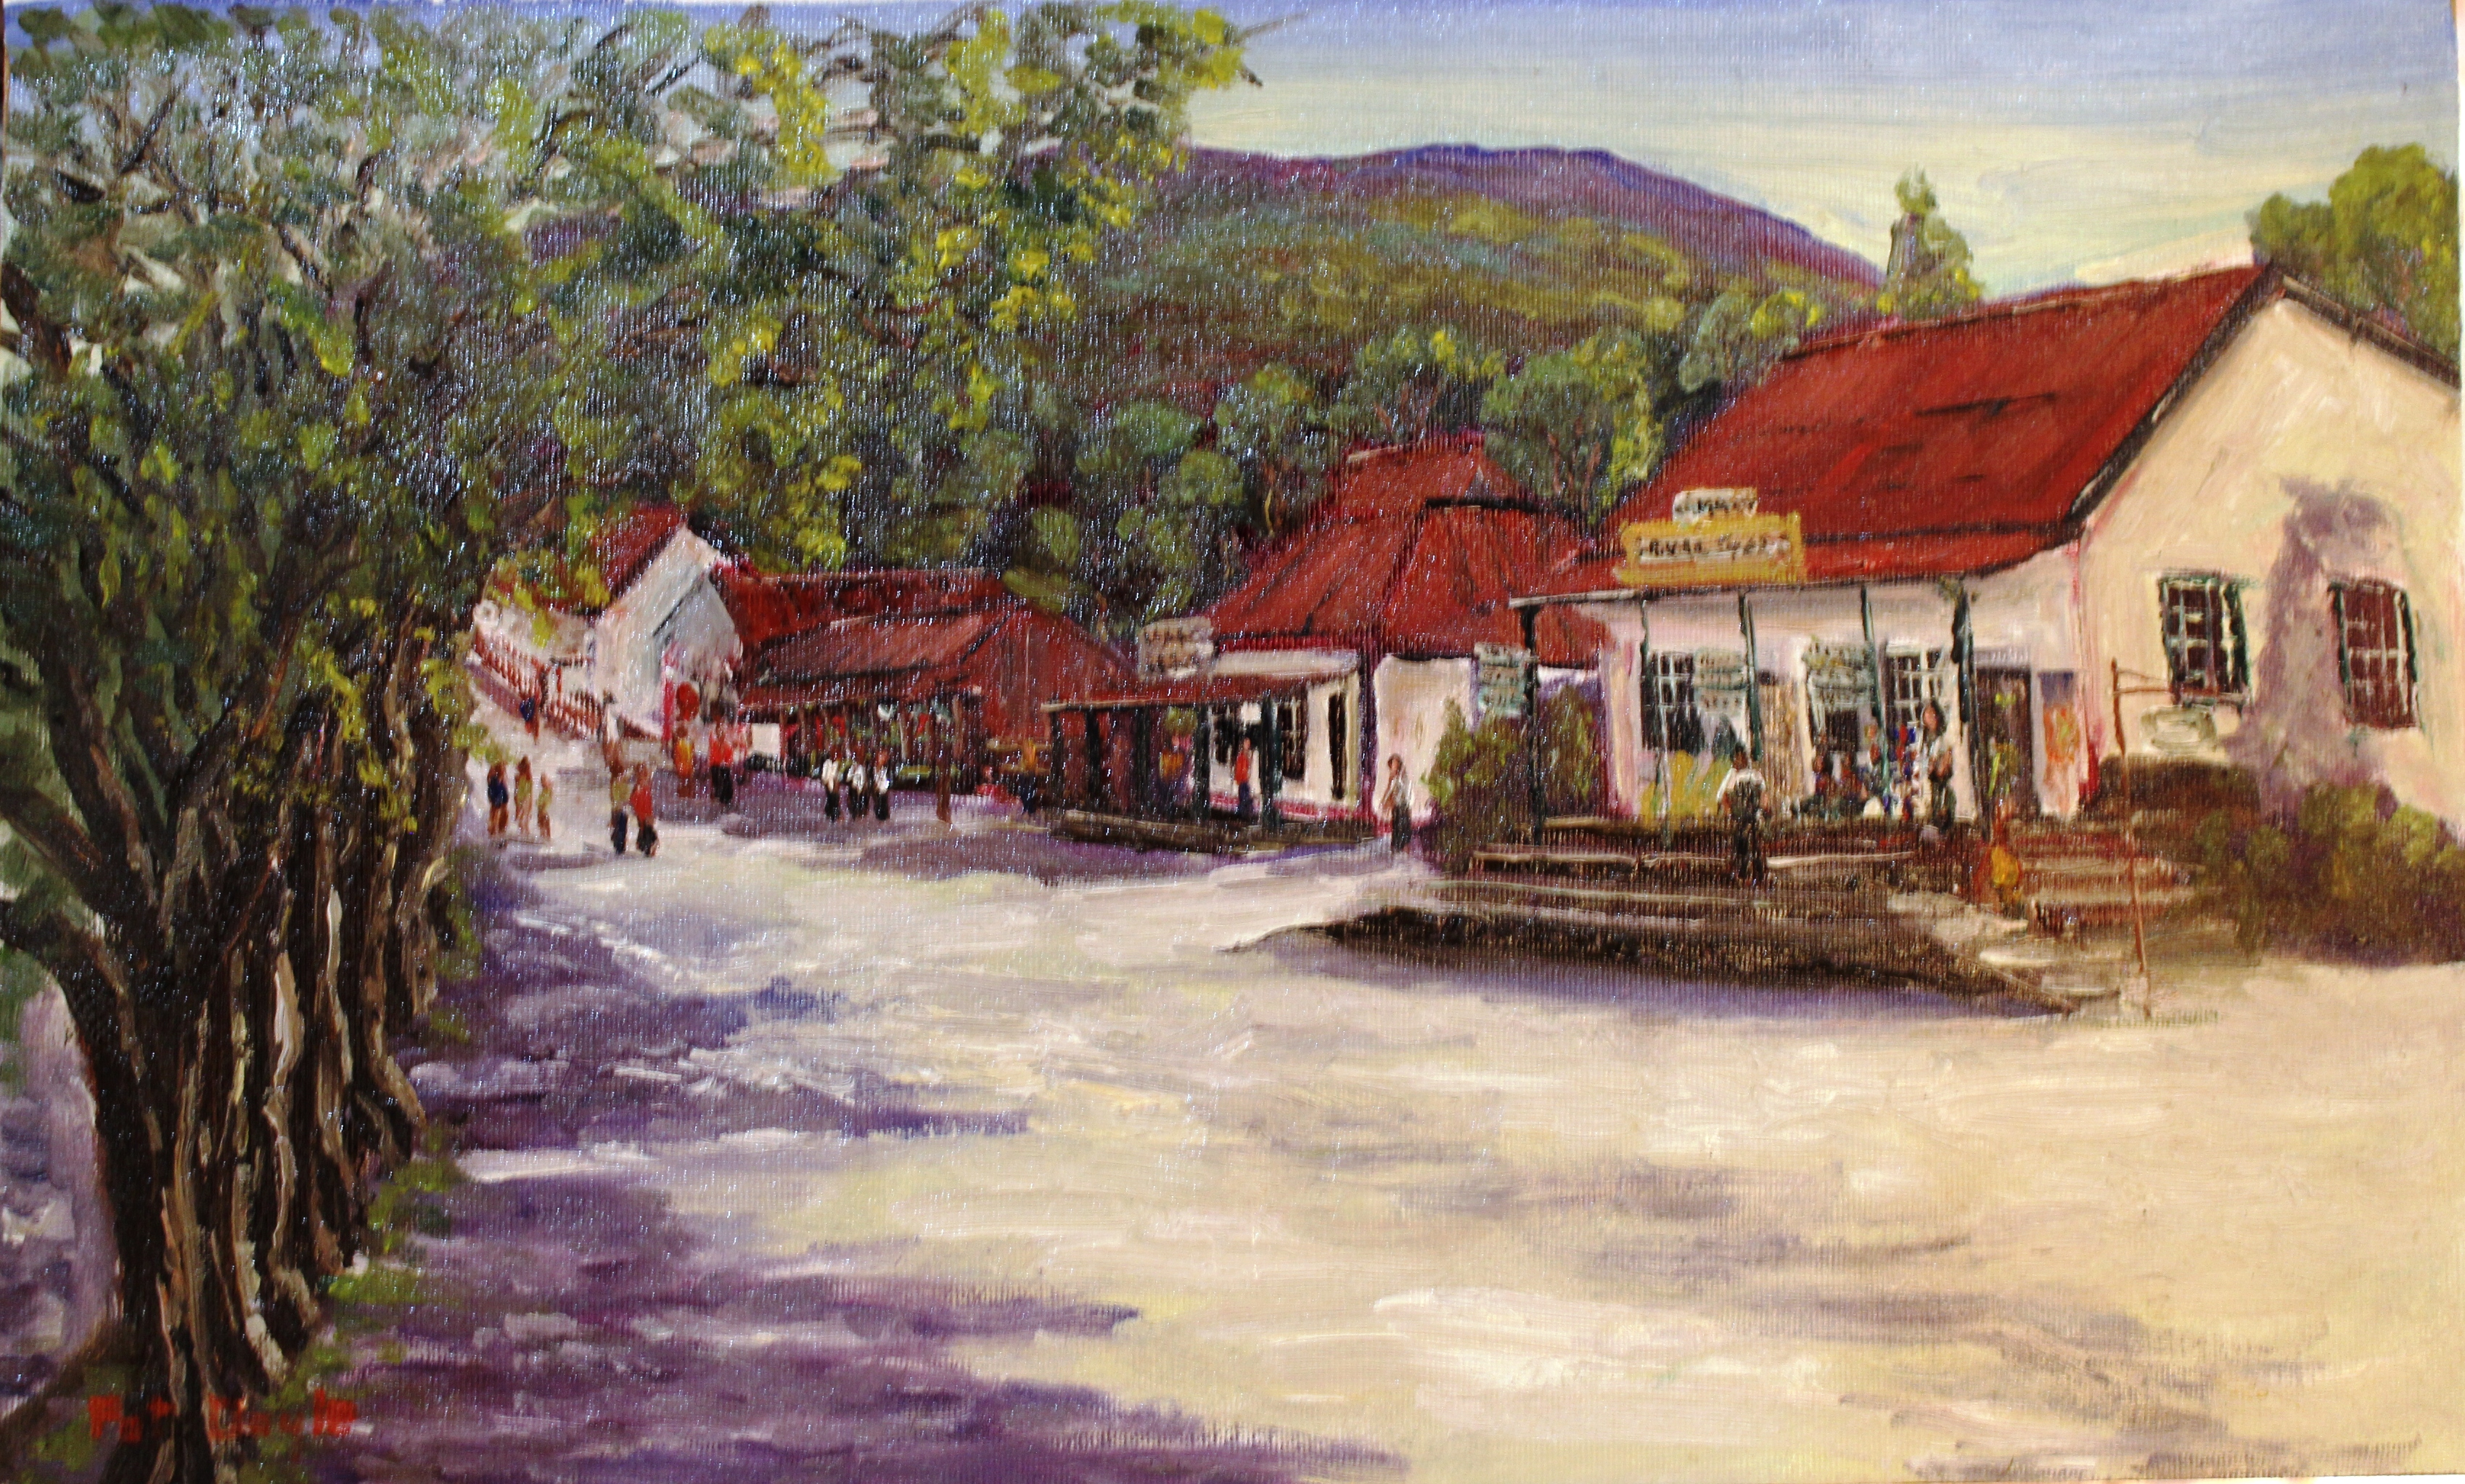 Painting of Pilgrims Rest SA.